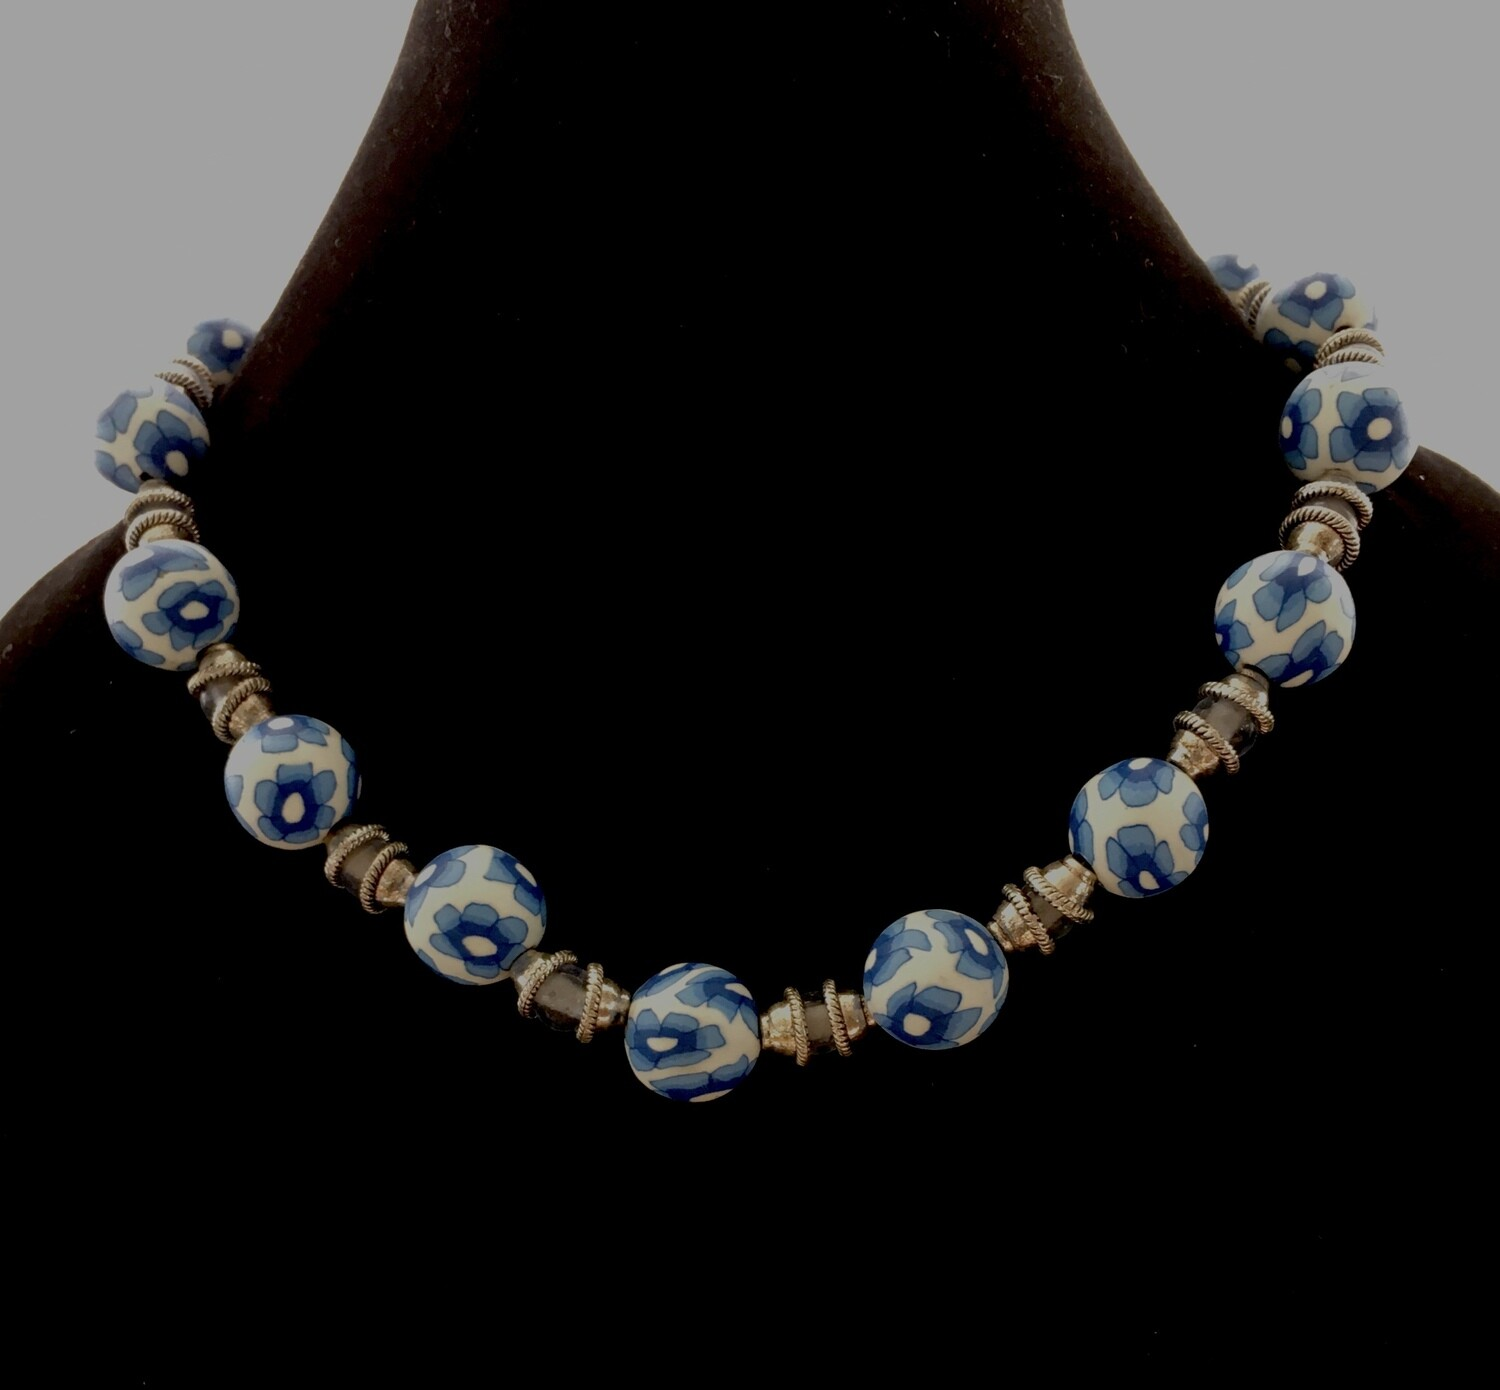 Blue floral pattern beads with silver spacers